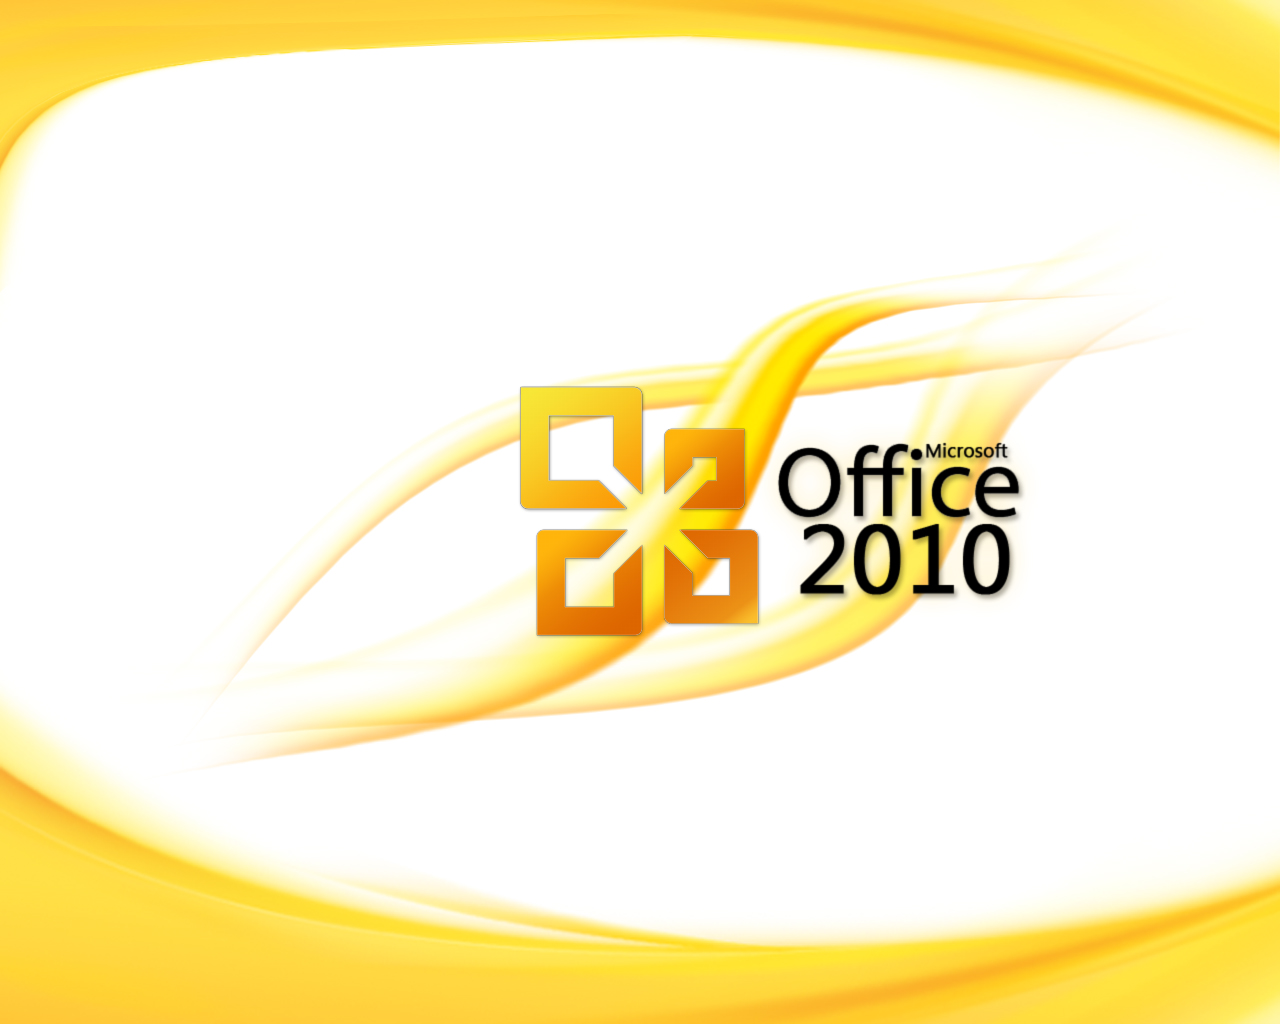 office 2010 32 bits office 2010 64 bits 2010 64 bits part04 rar si se